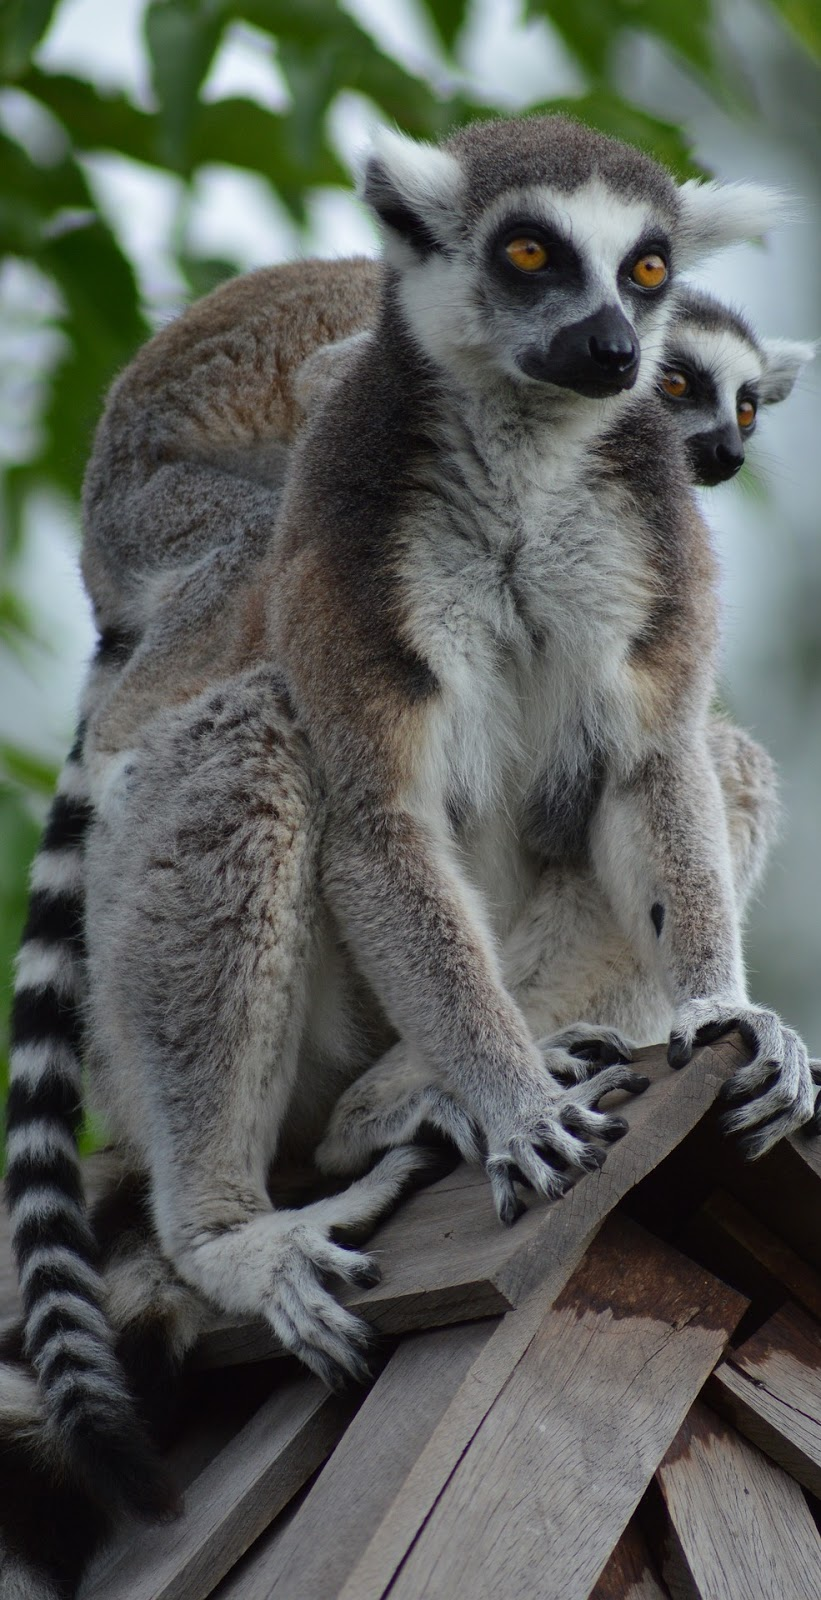 Lemur mother and child.